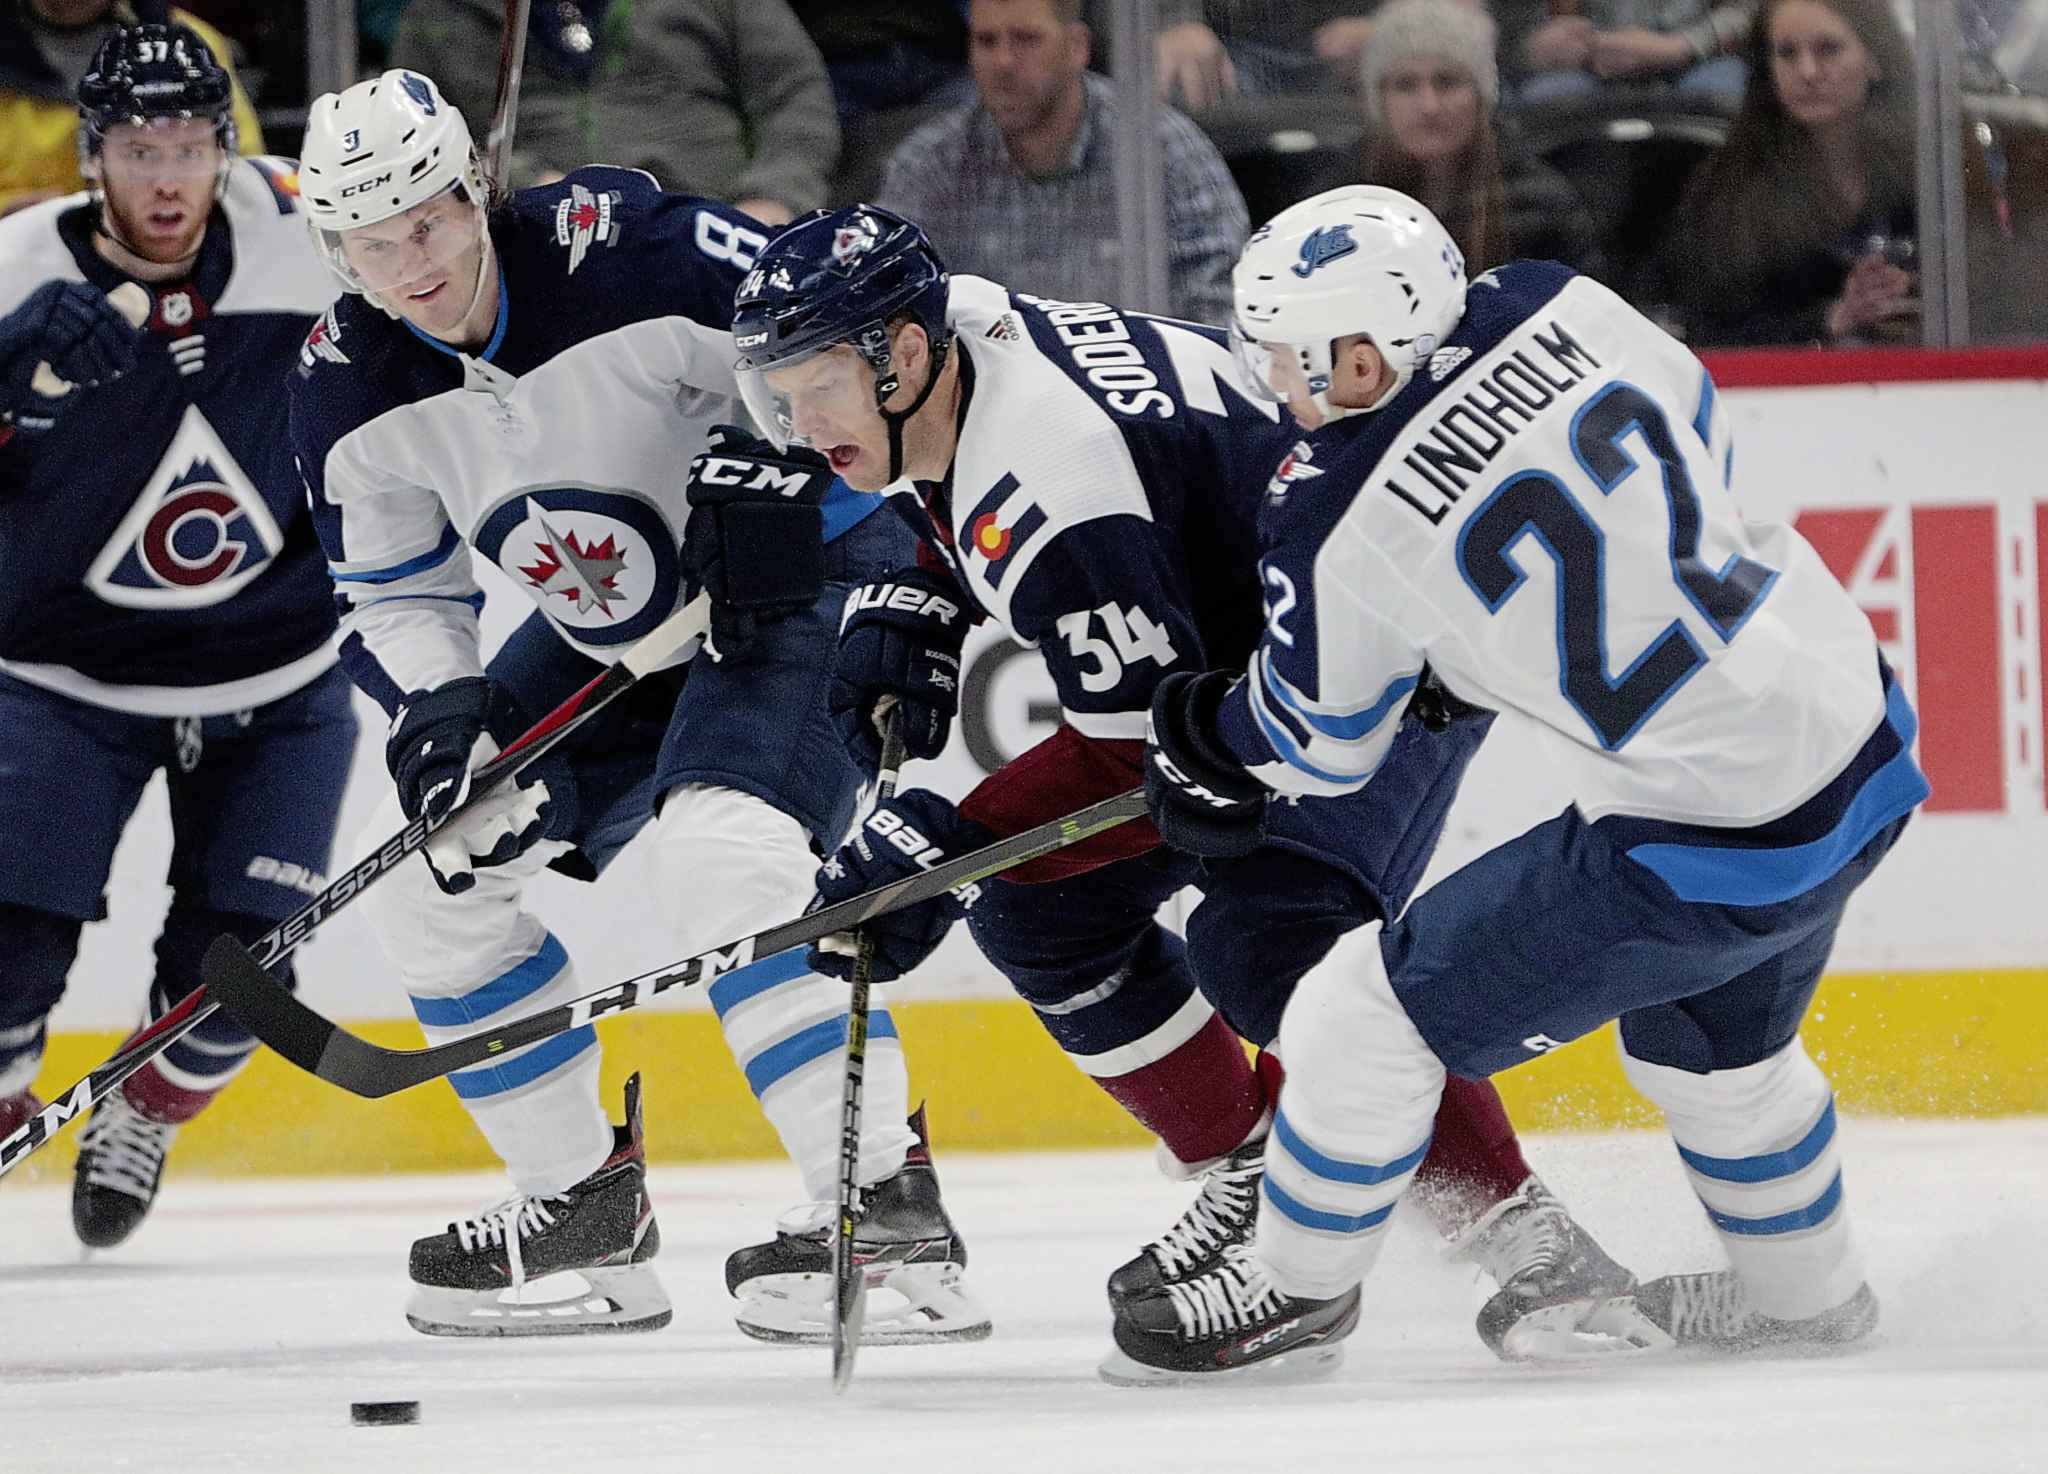 Colorado Avalanche center Carl Soderberg (34) skates between Winnipeg Jets defenseman Jacob Trouba (8) and center Par Lindholm (22) during the first period last night. (AP Photo/Joe Mahoney)